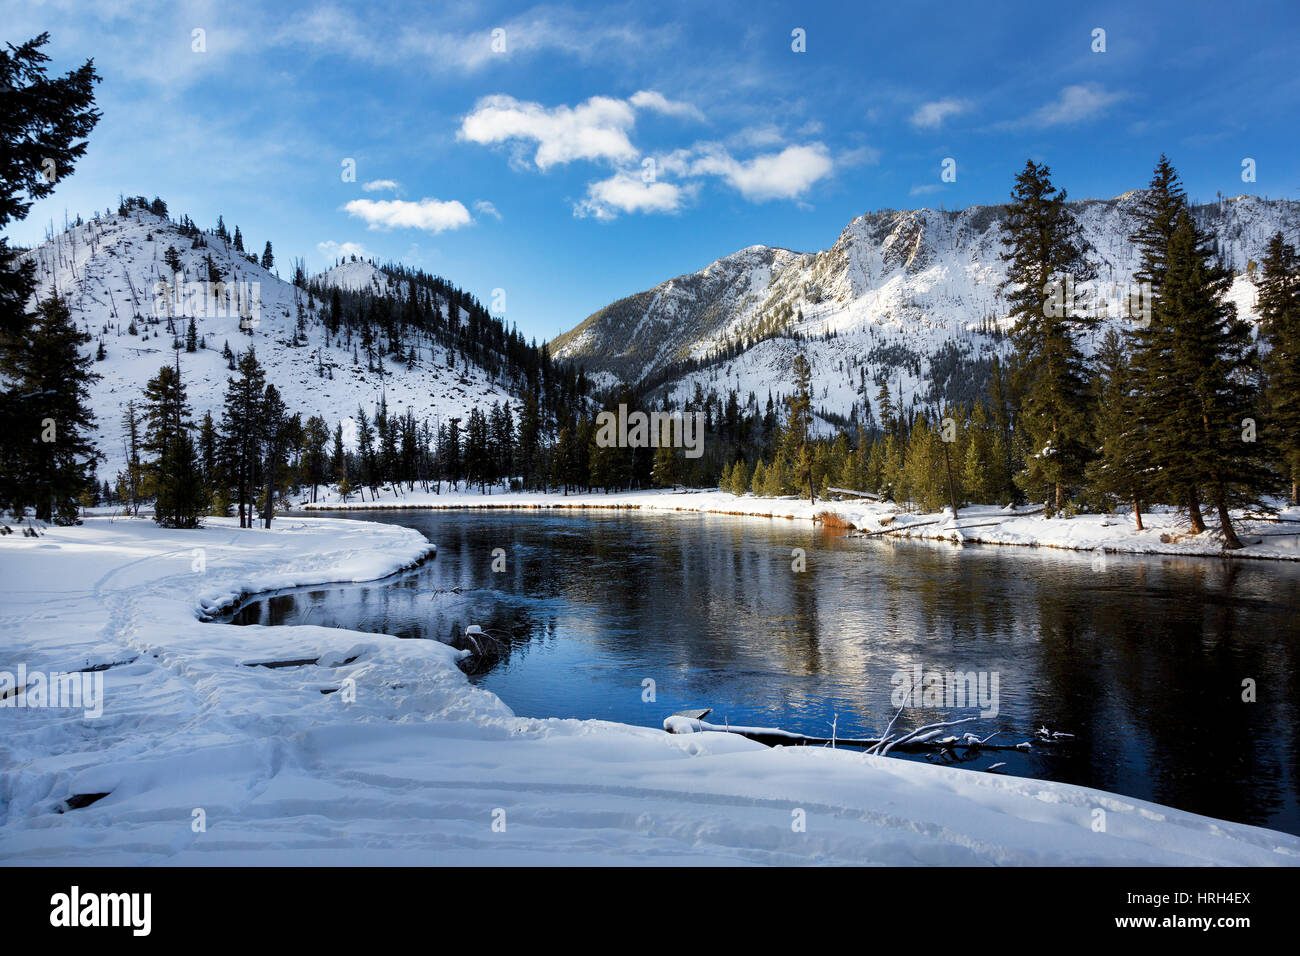 Yellowstone River, Winter, Yellowstone National Park - Stock Image